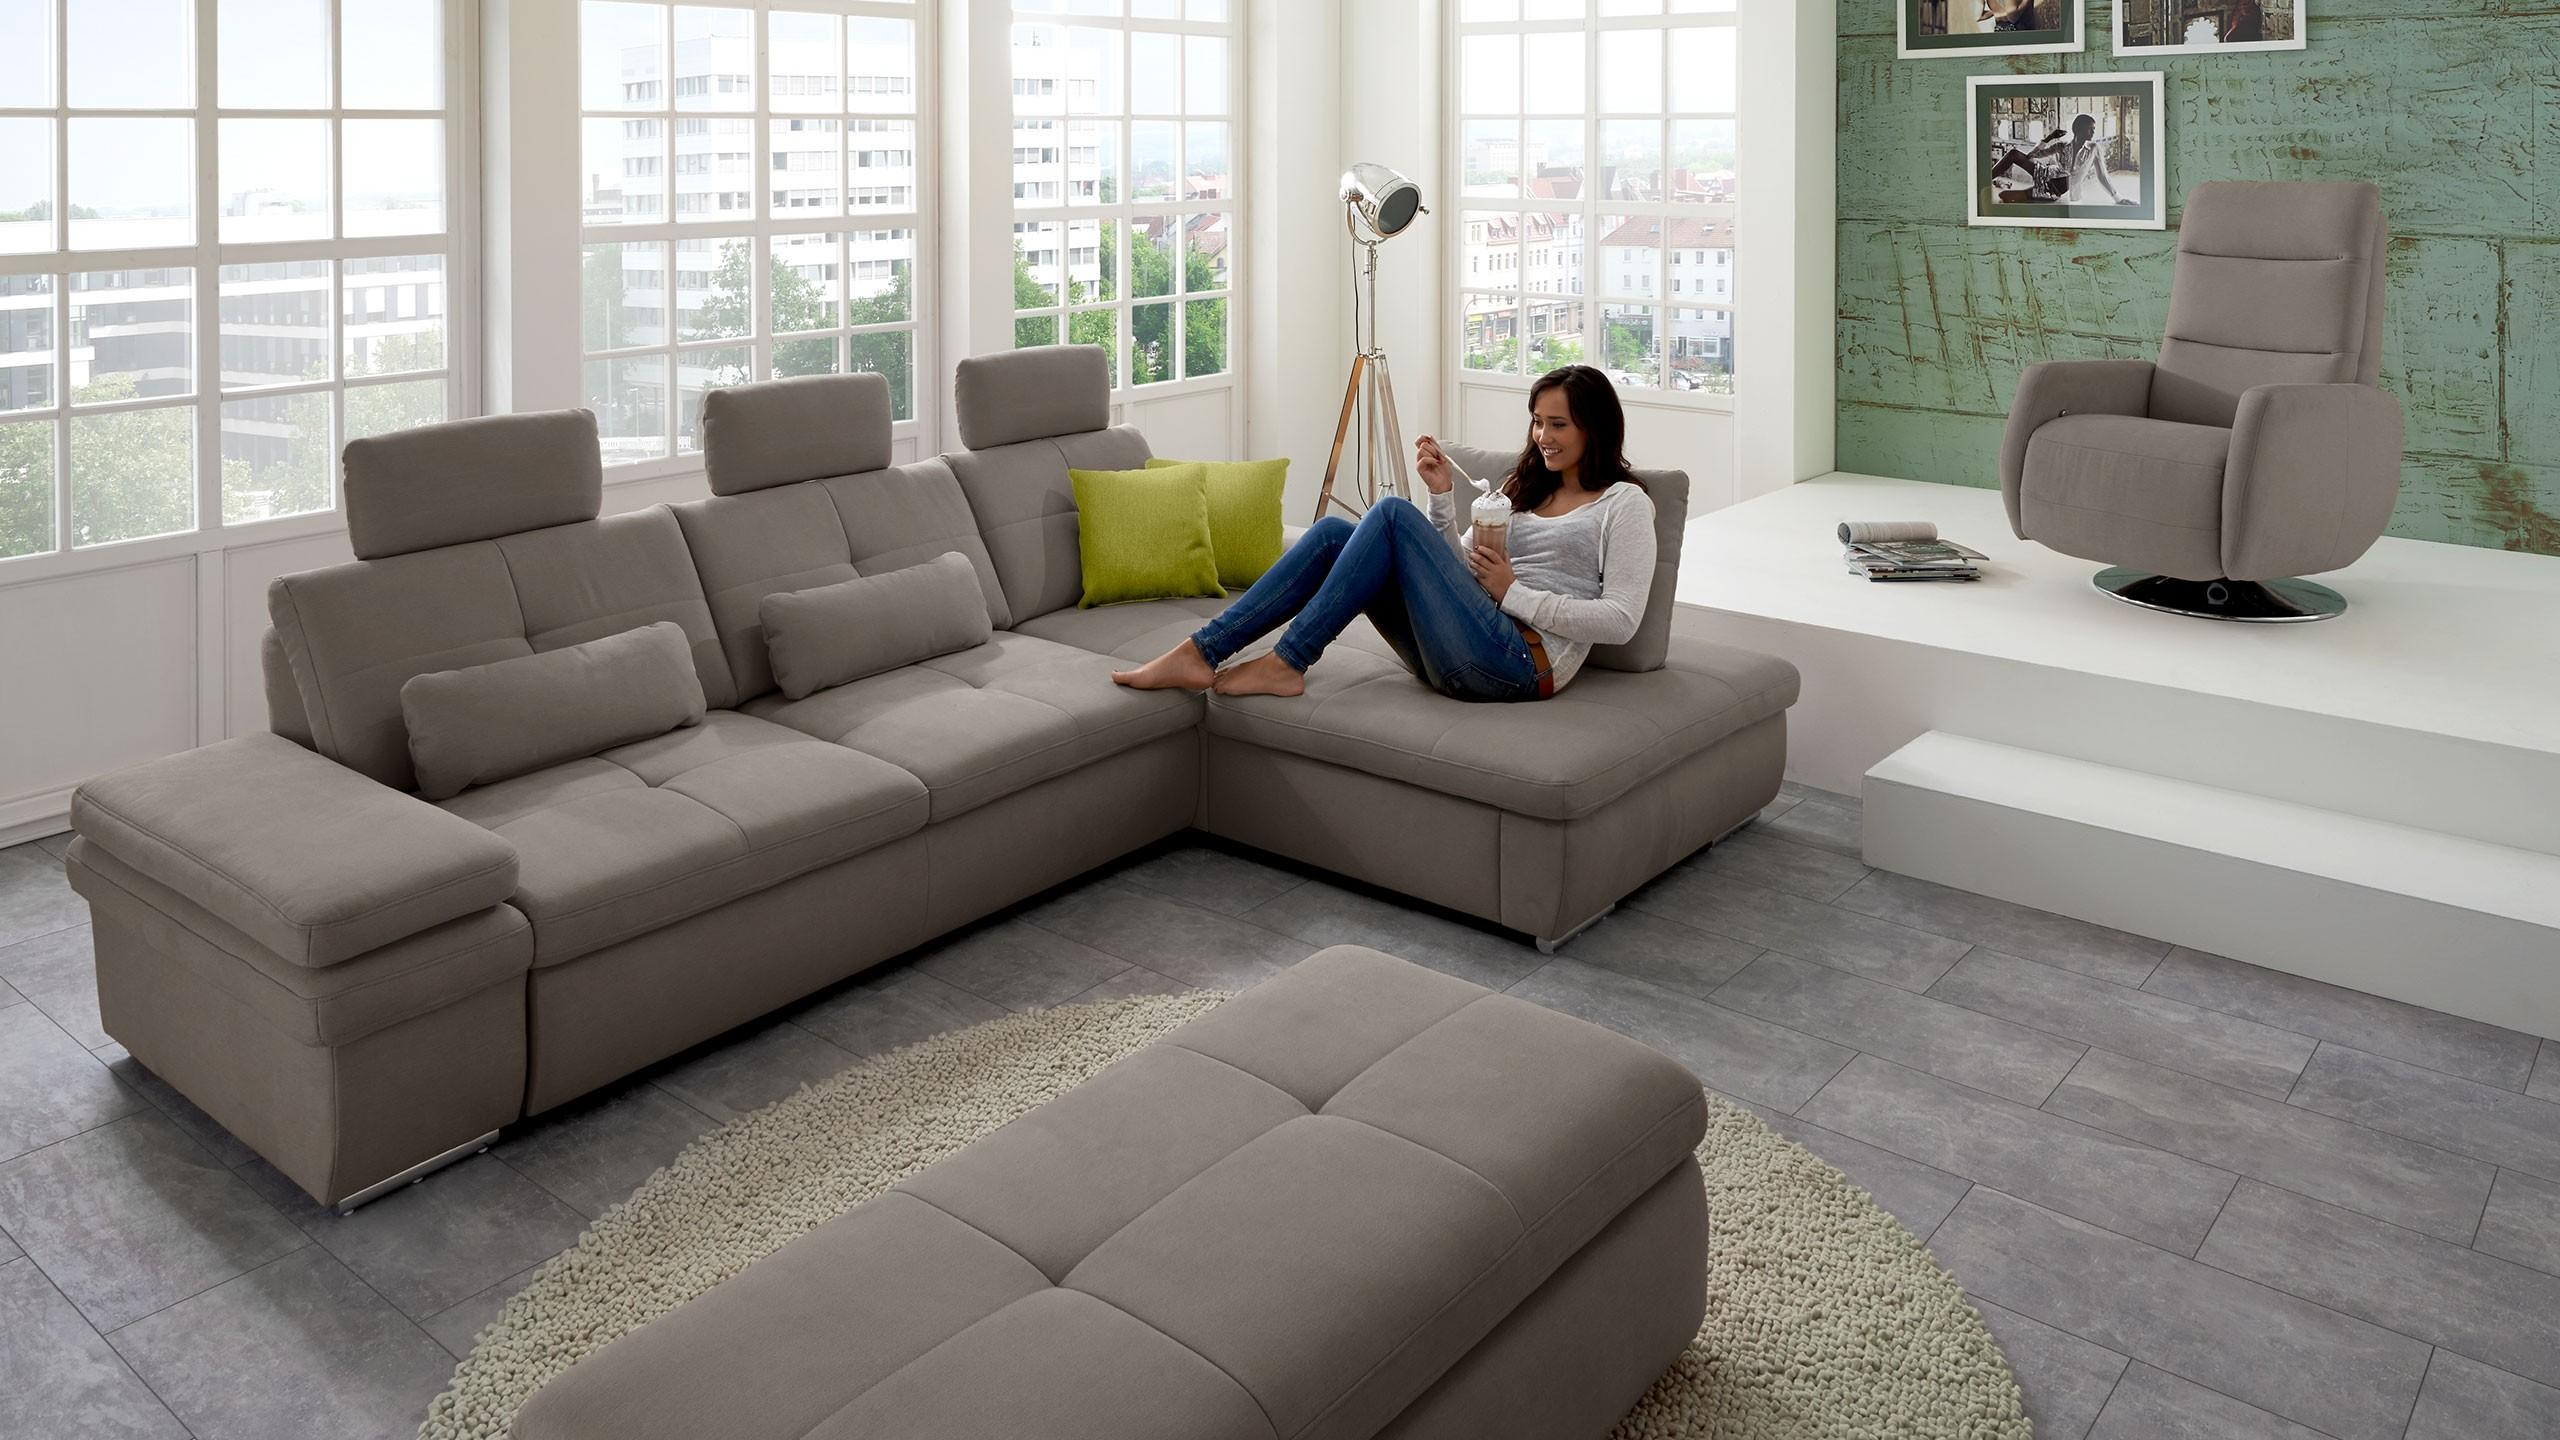 SC smart 1021 Hocker Grau